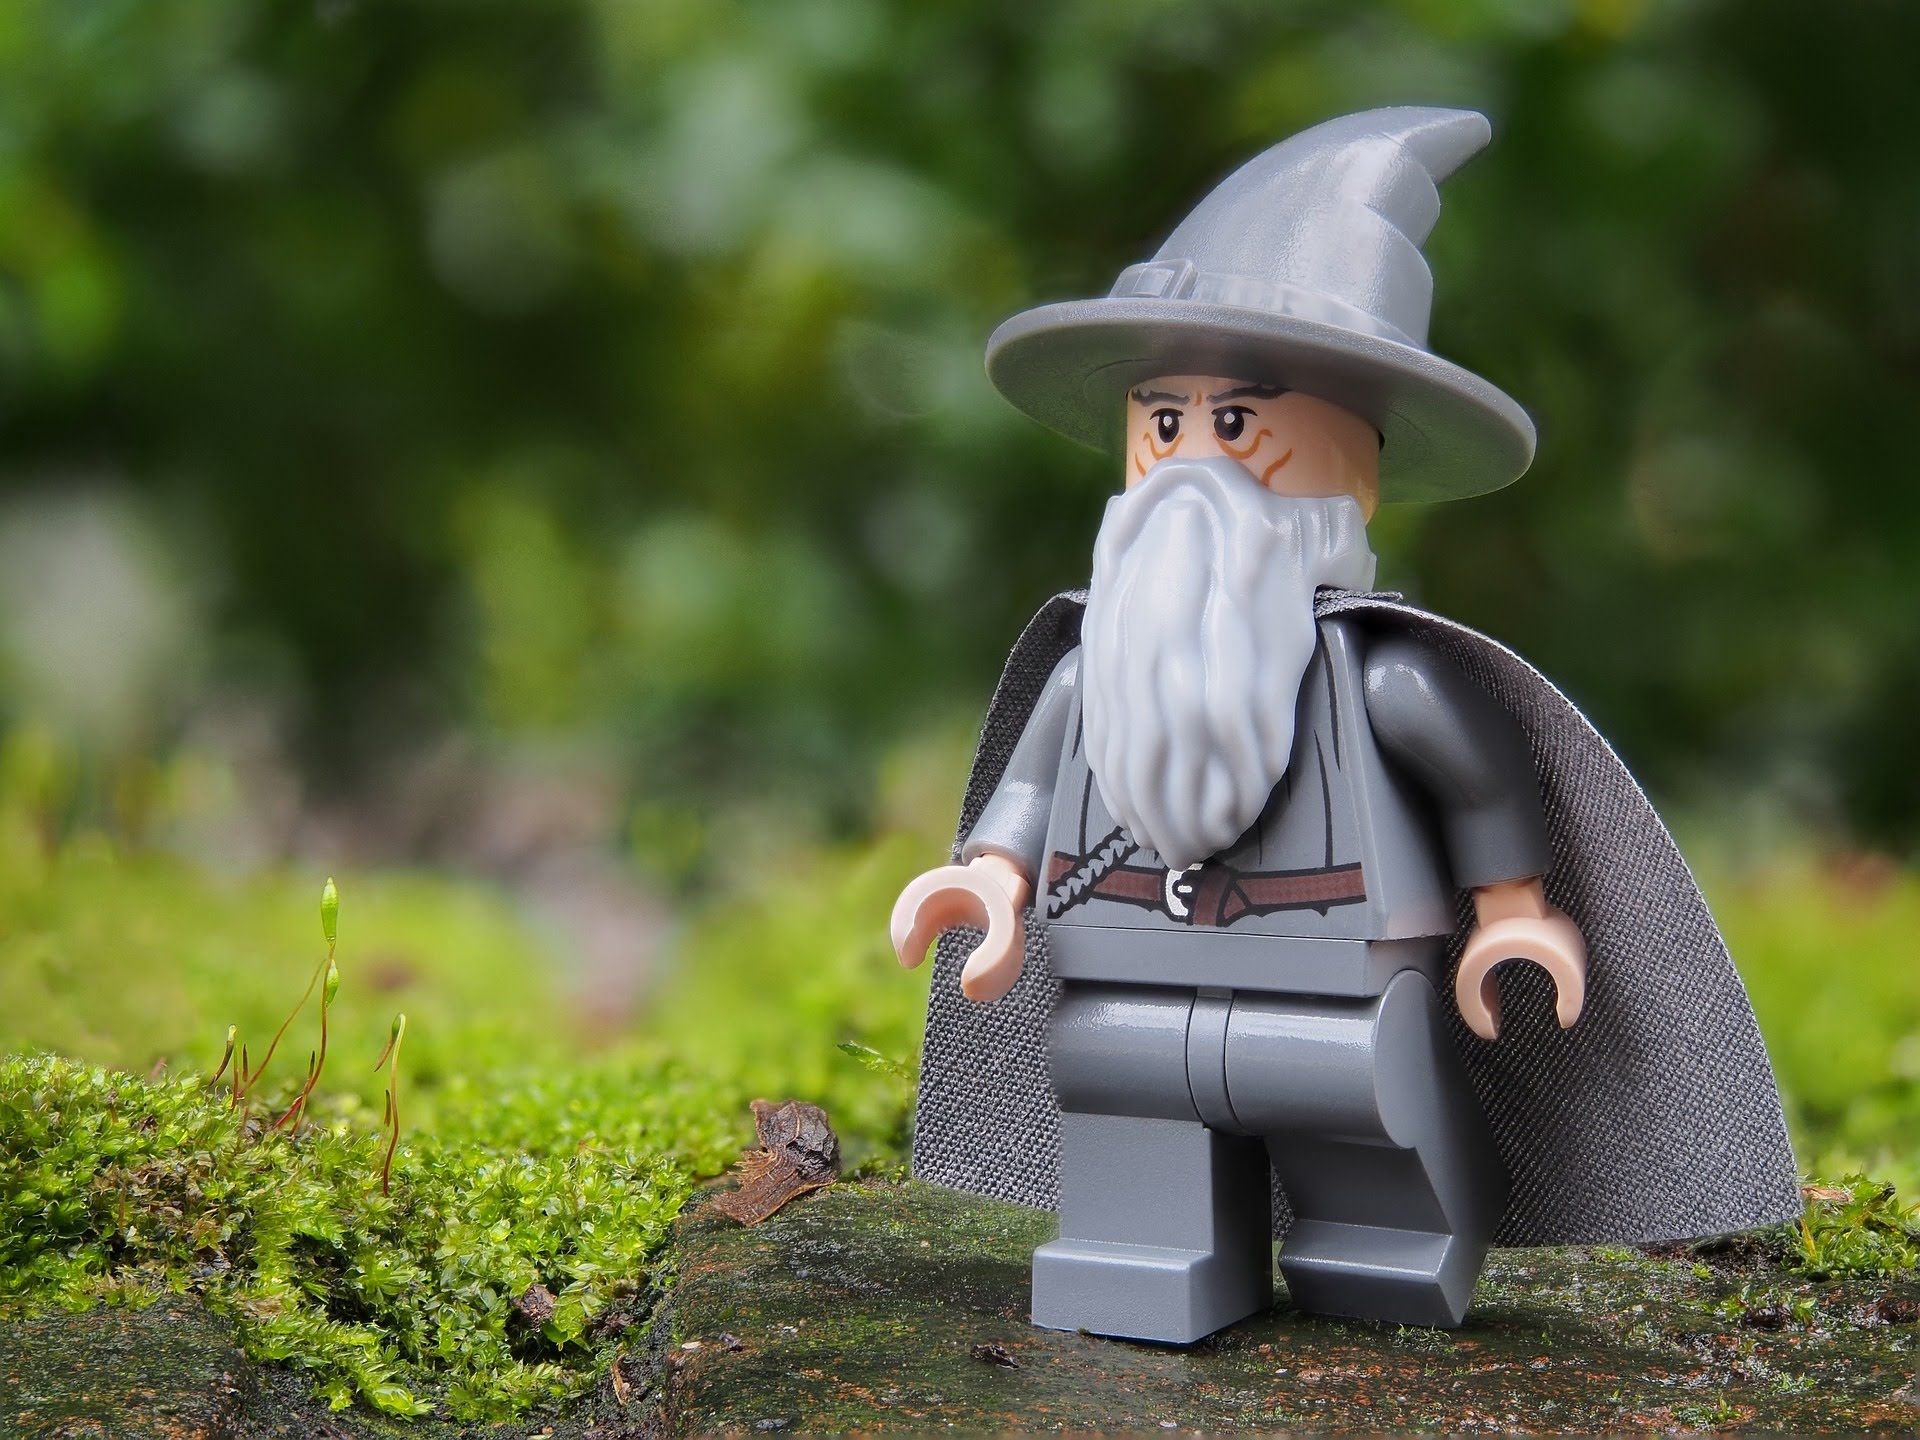 Lego Gandalf walking in the woods